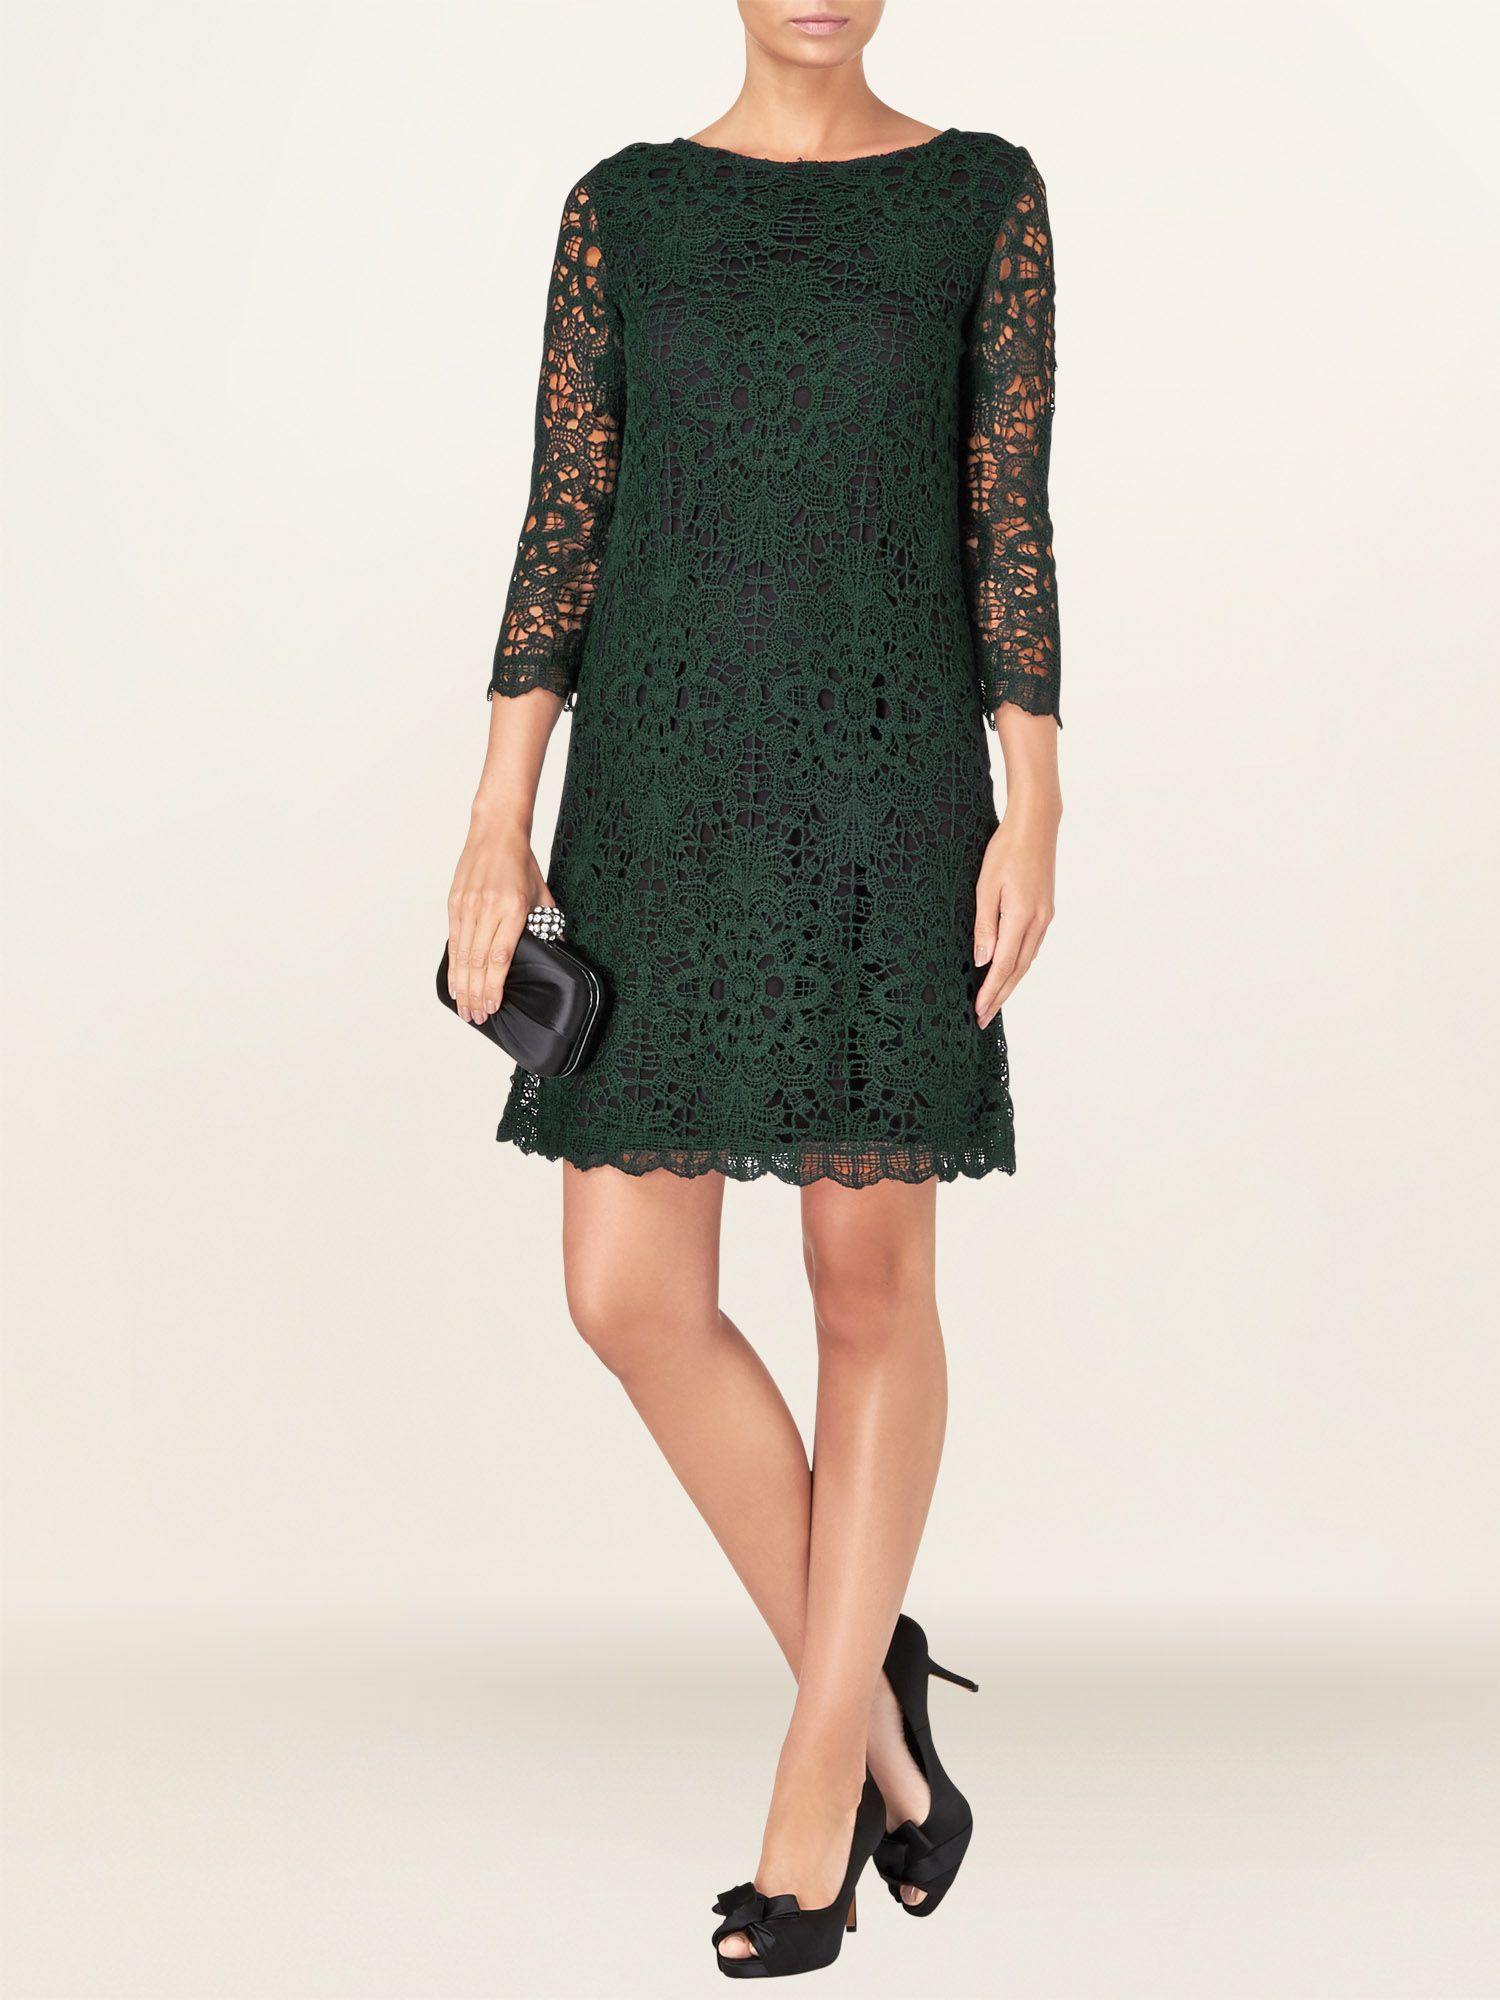 Celeste crochet lace dress